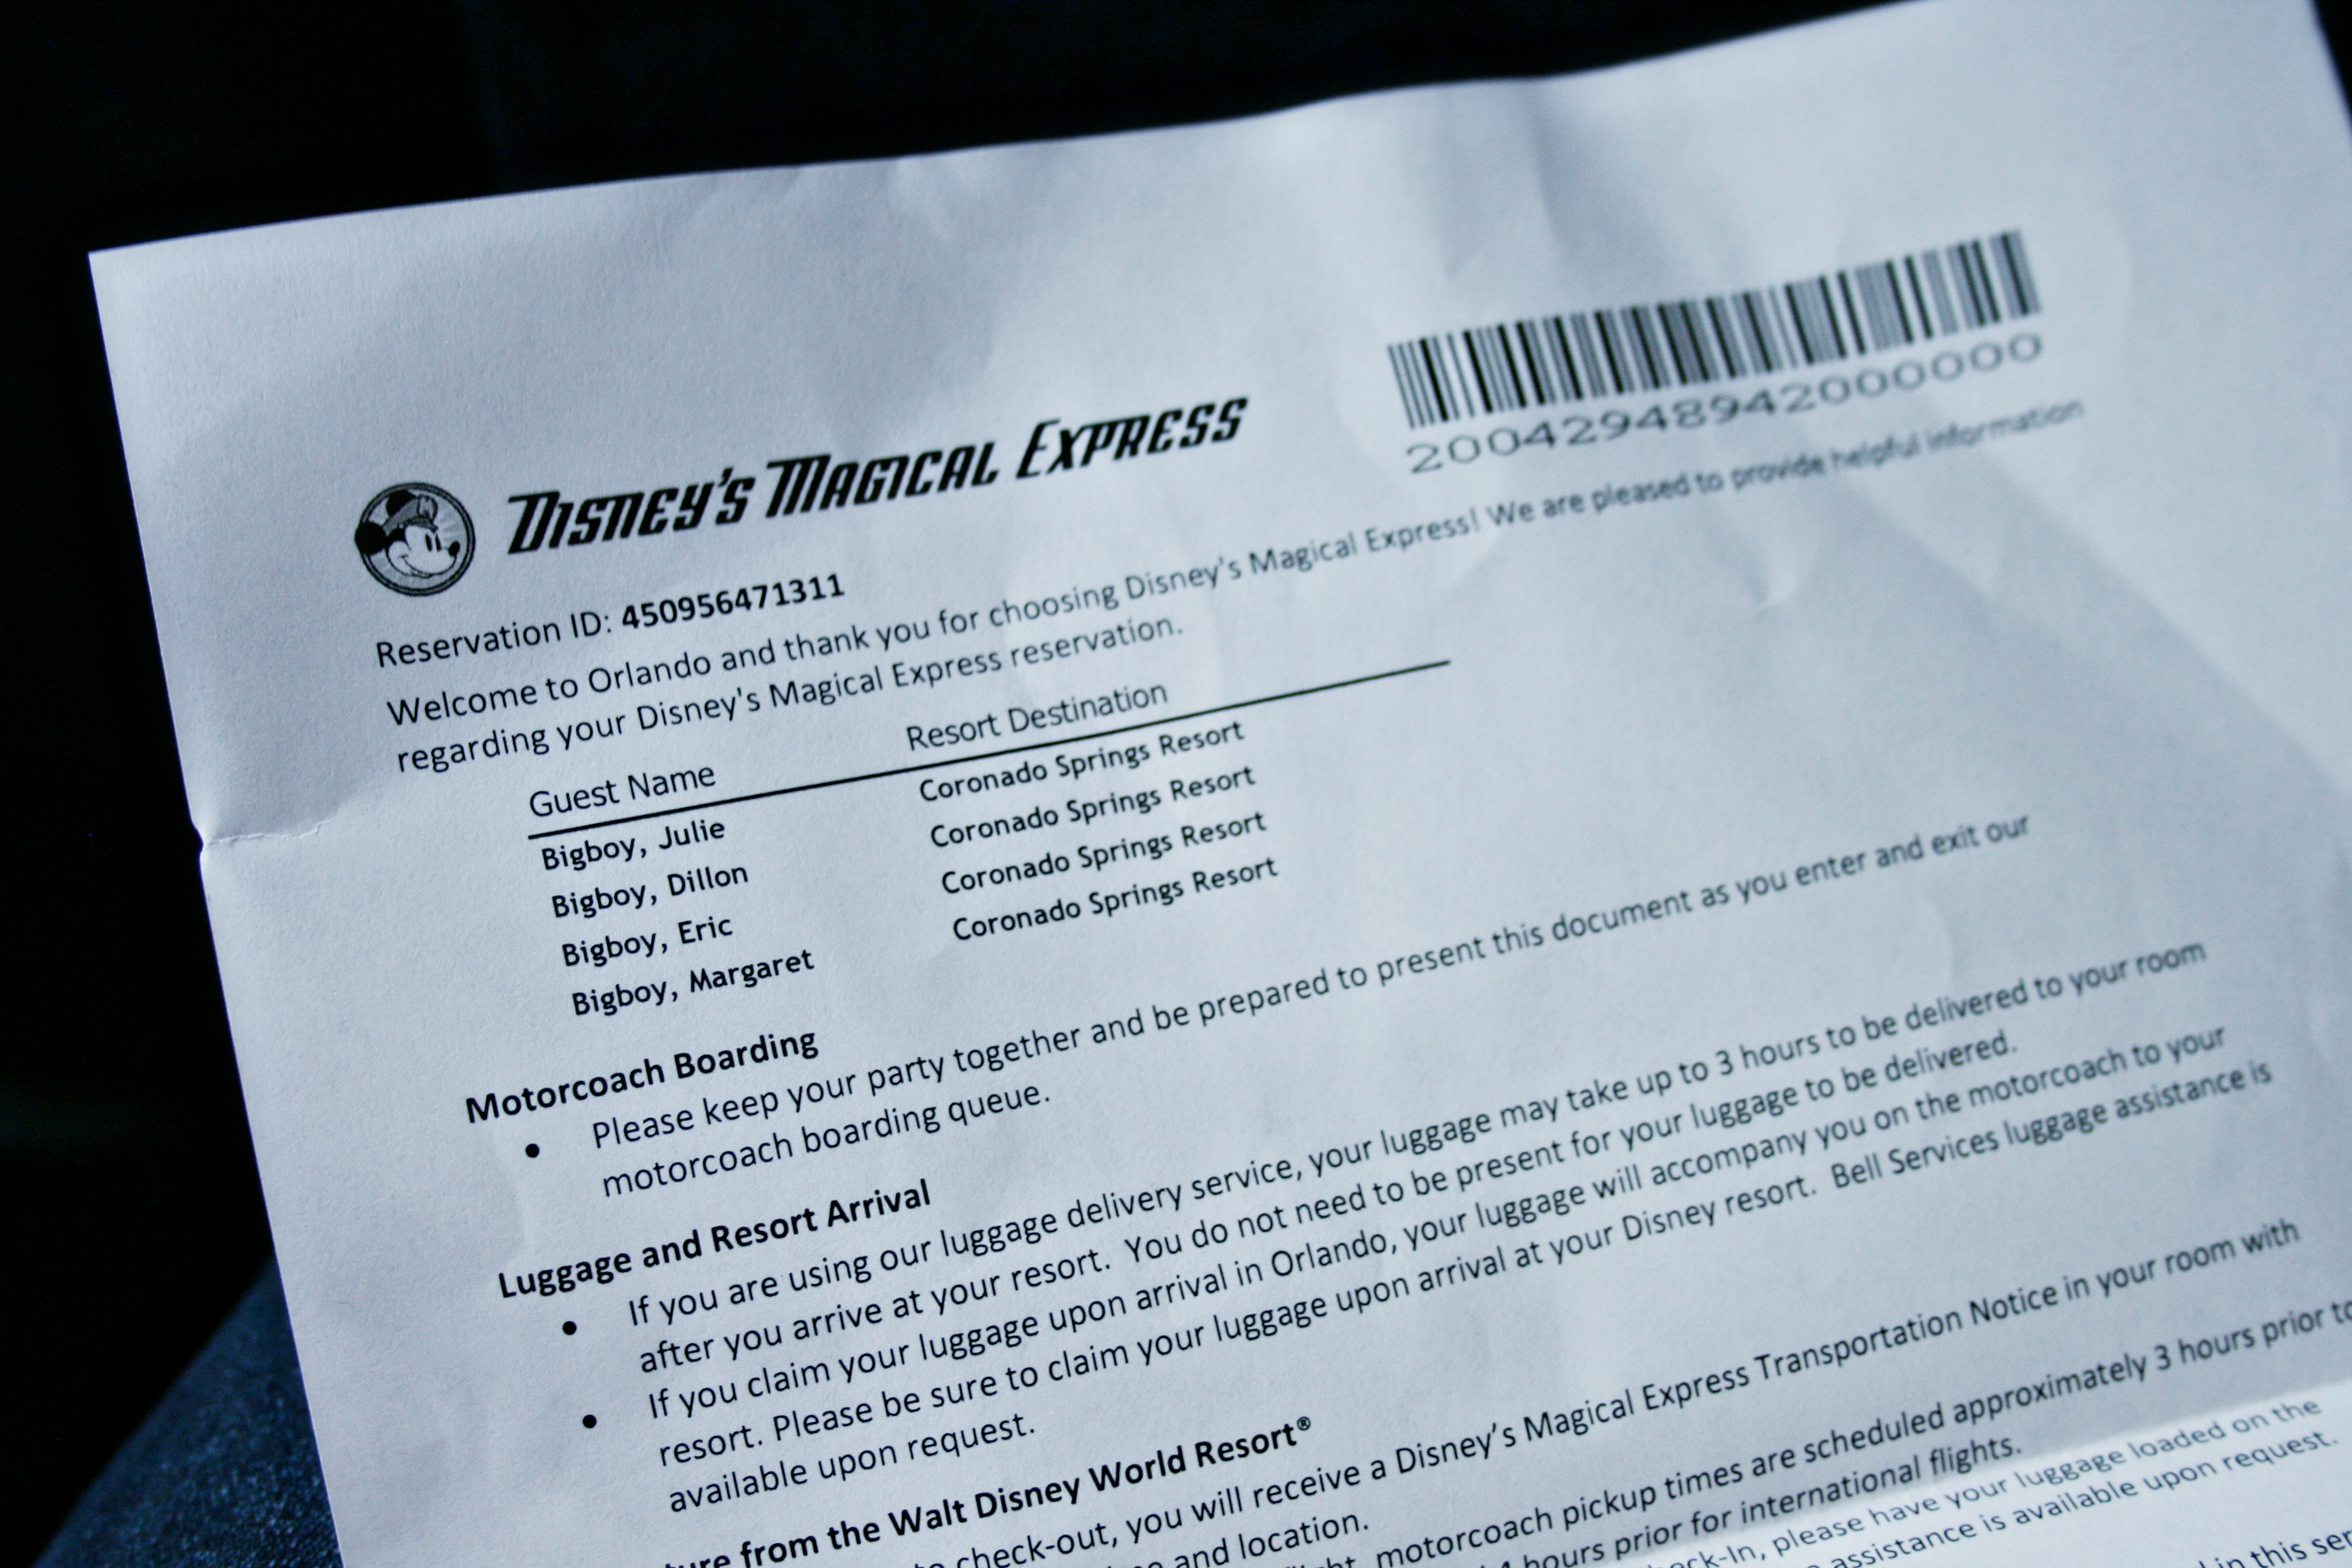 Disney's Magical Express paperwork